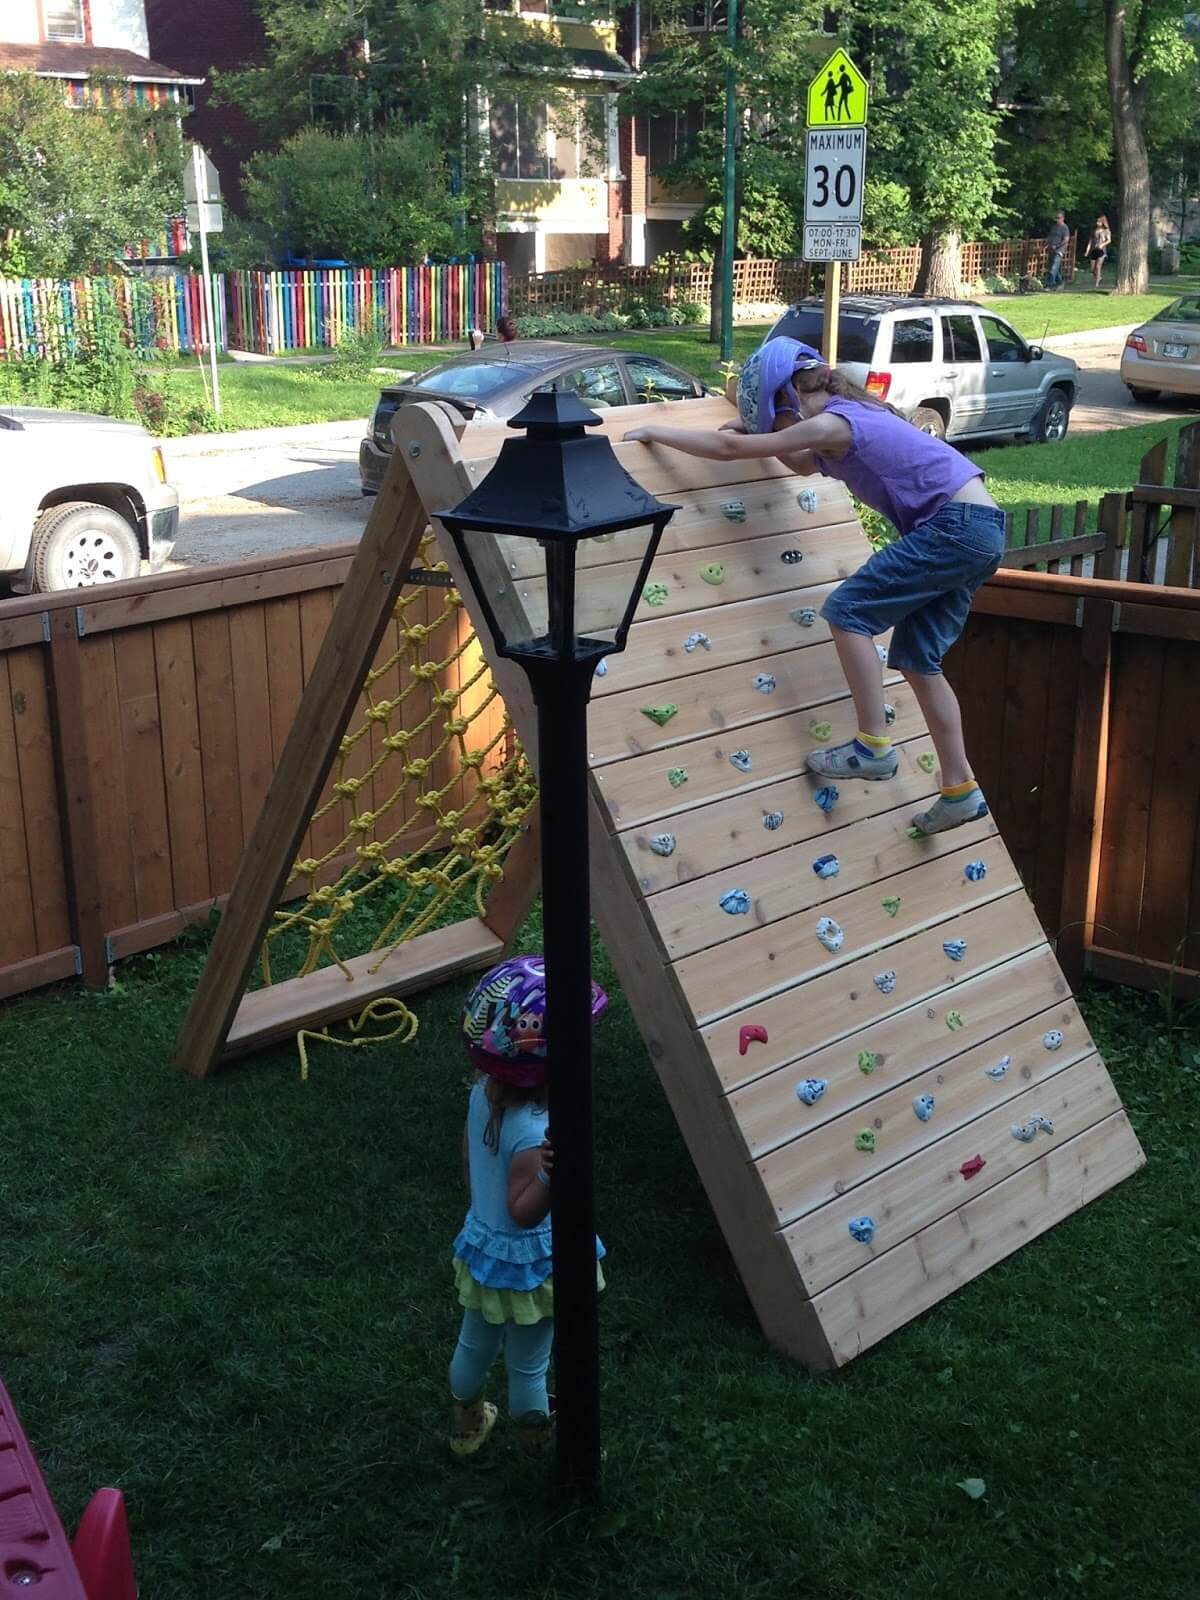 34 Best Diy Backyard Ideas And Designs For Kids In 2019 for Cheap Backyard Playground Ideas